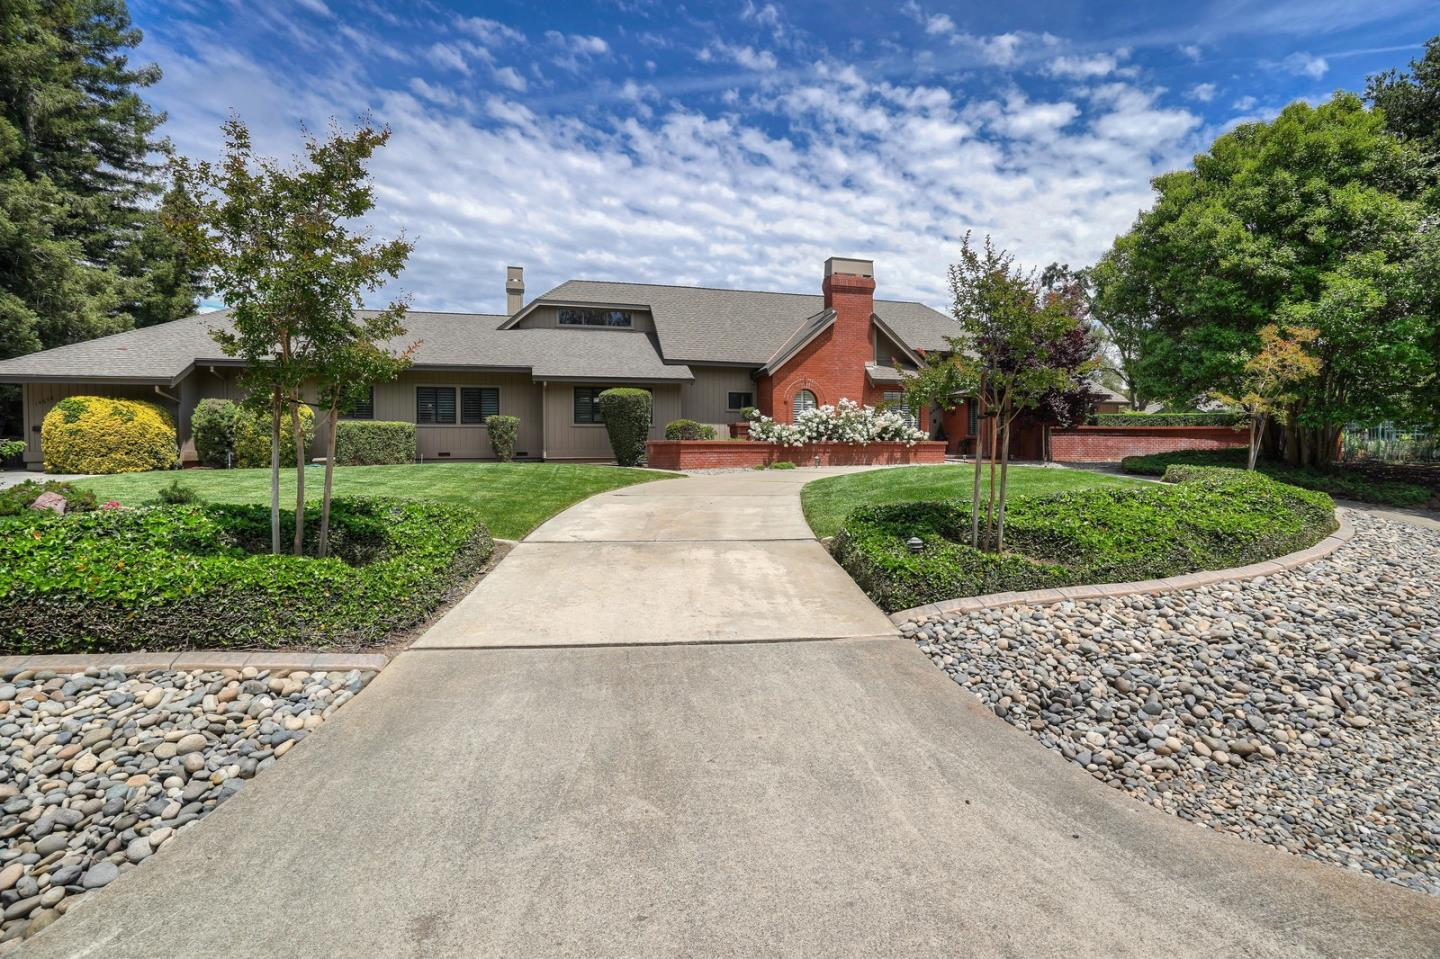 14658 Stonebridge DR, Morgan Hill, California